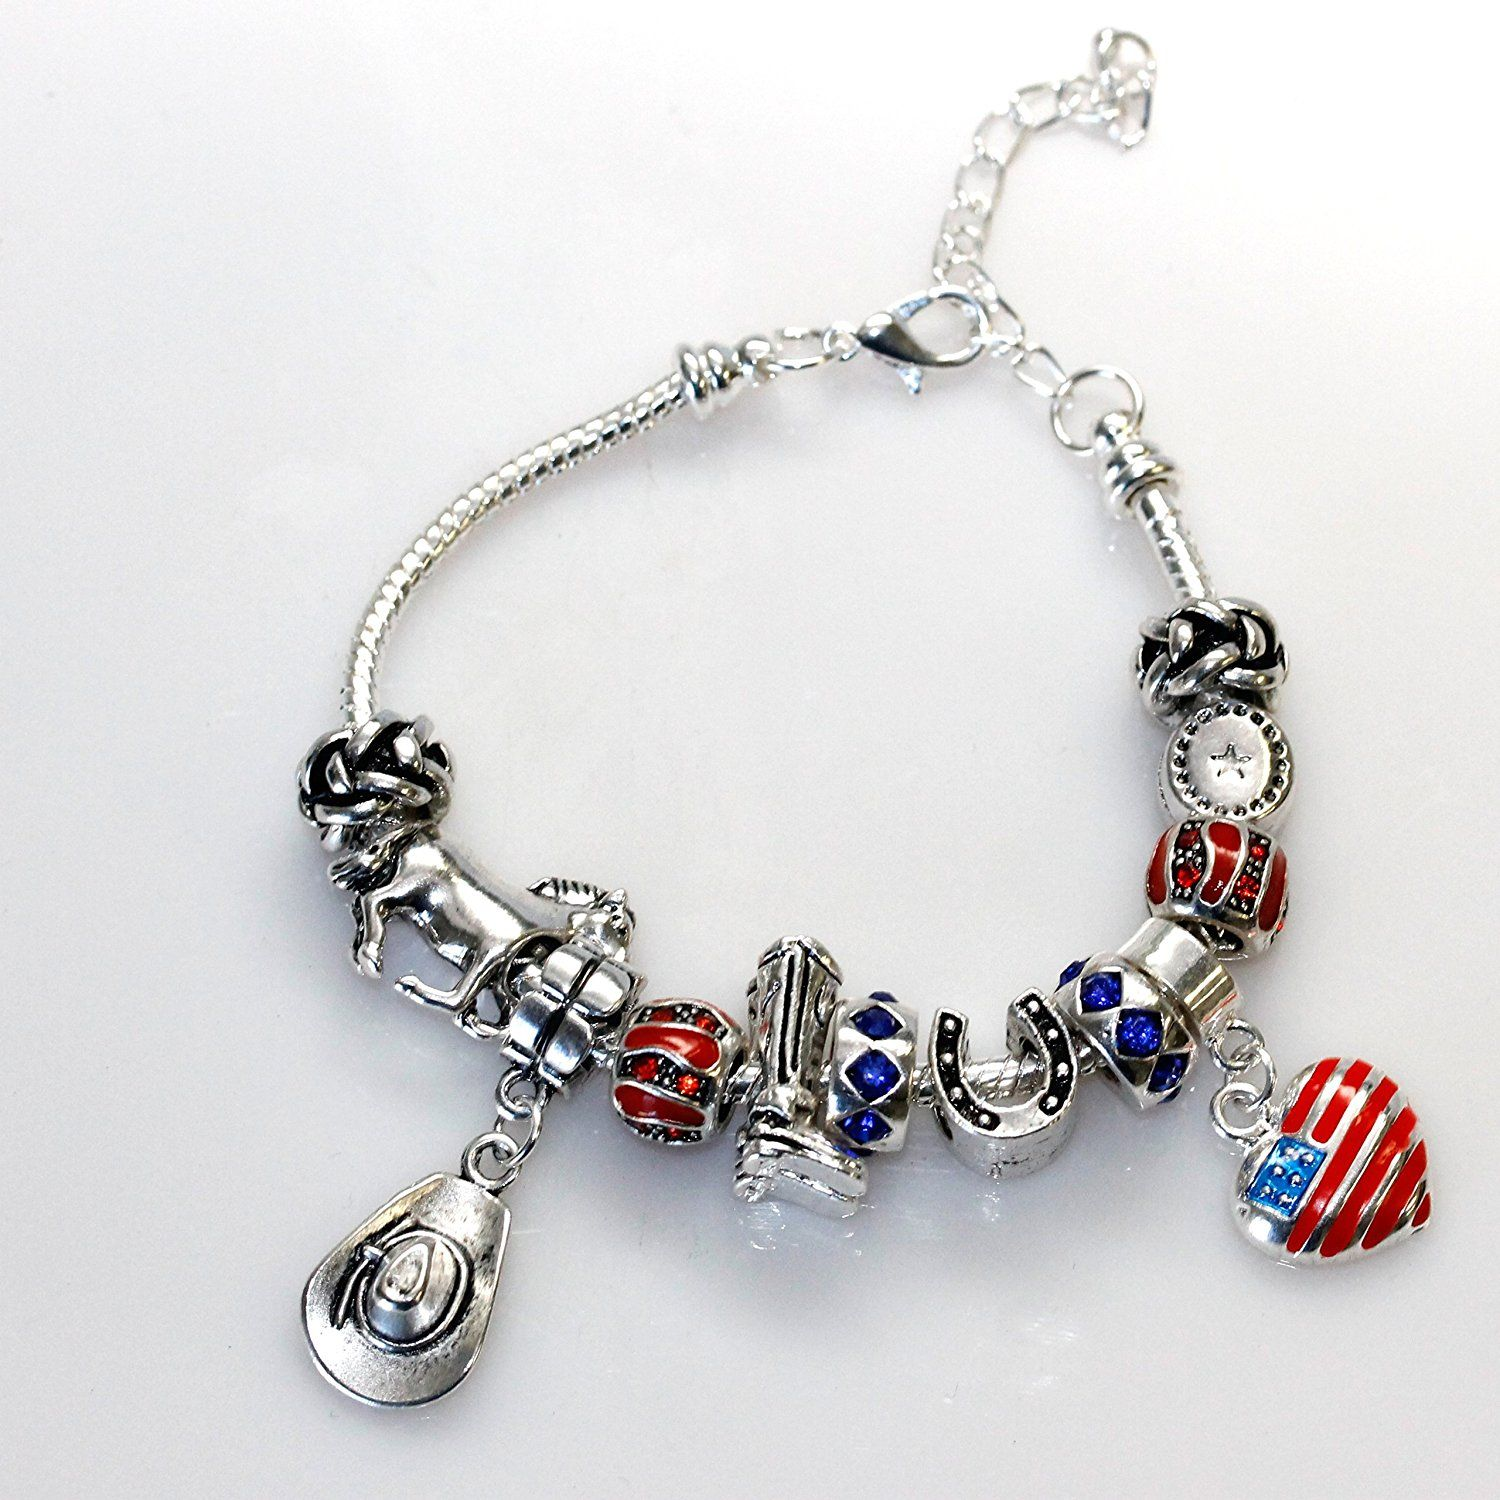 Country Cowgirl Theme Charm Style Bracelet 7 With 2